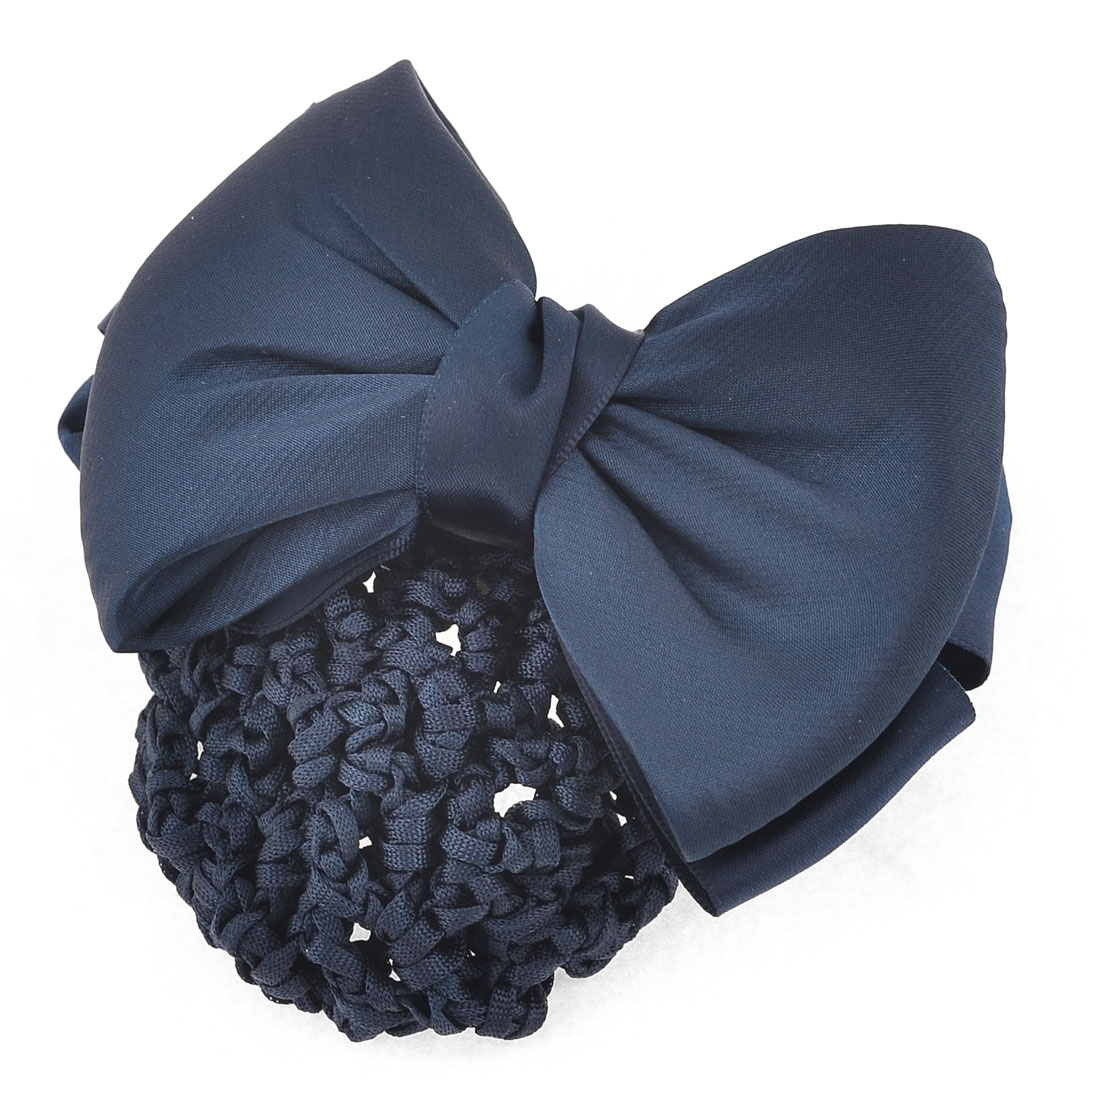 Dark Blue Two Layers Polyester Bowknot Snood Net Barrette Hair Clip for Women